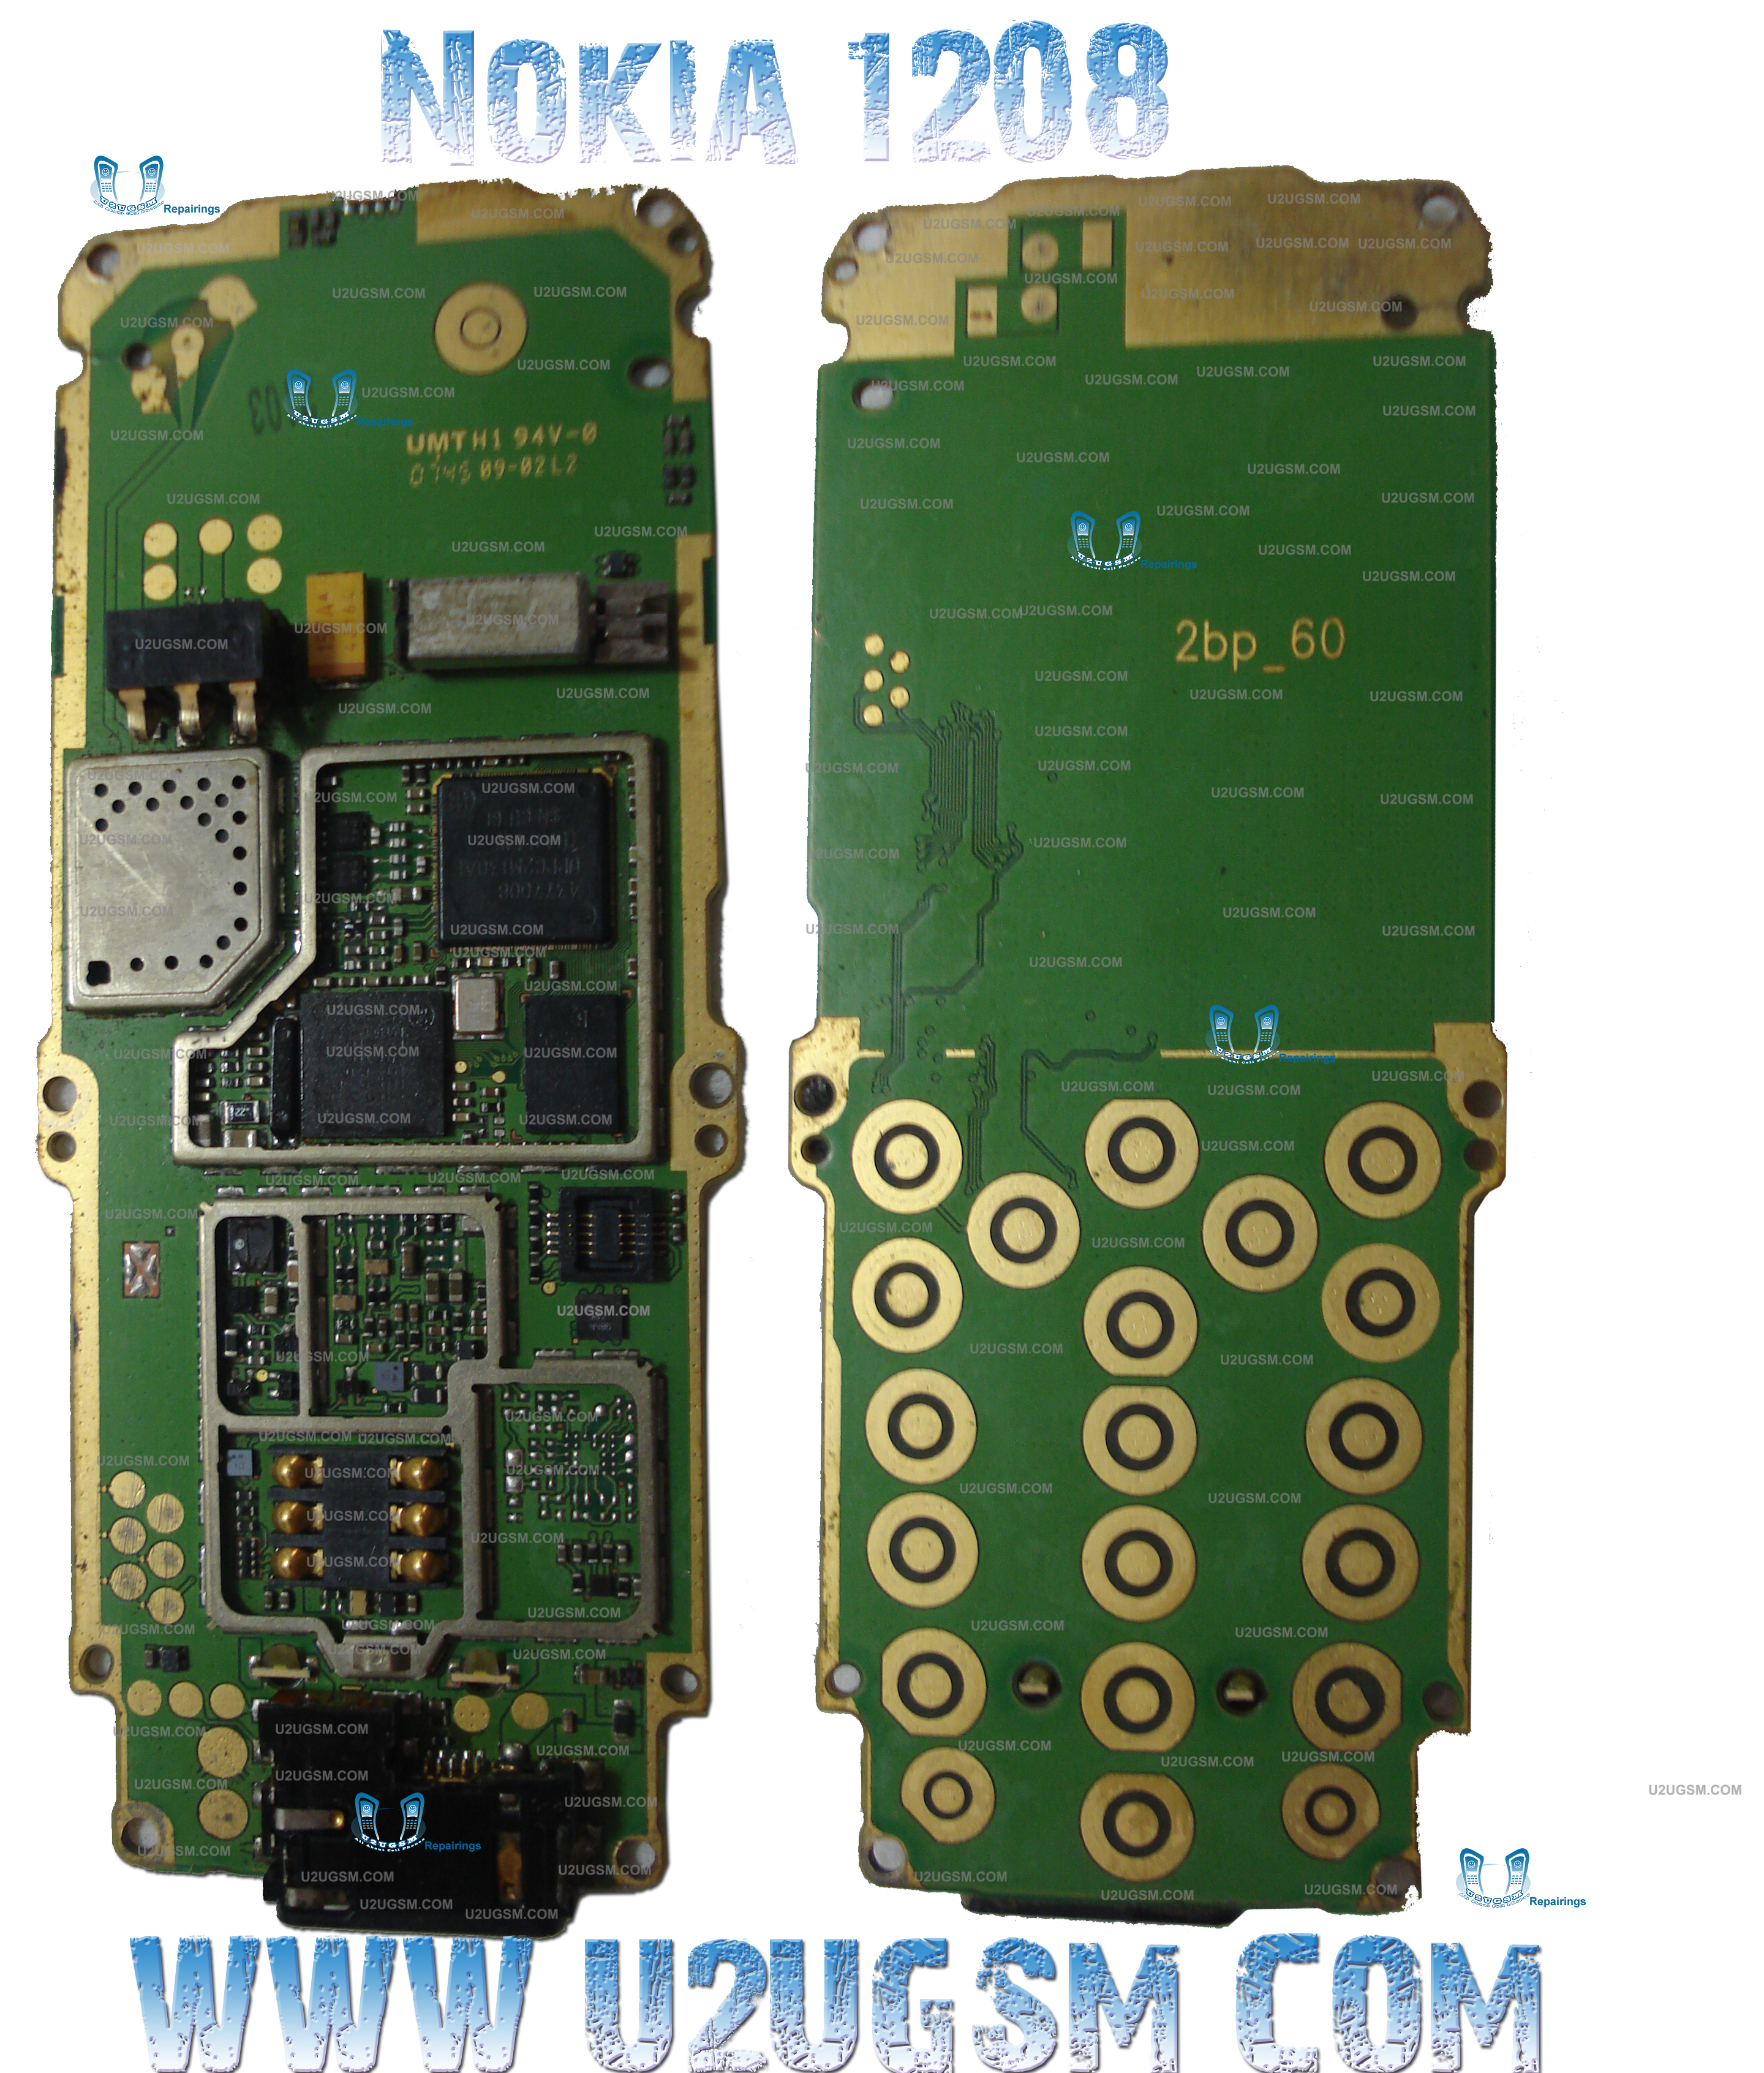 Download High Resolution Diagram of Nokia 1208